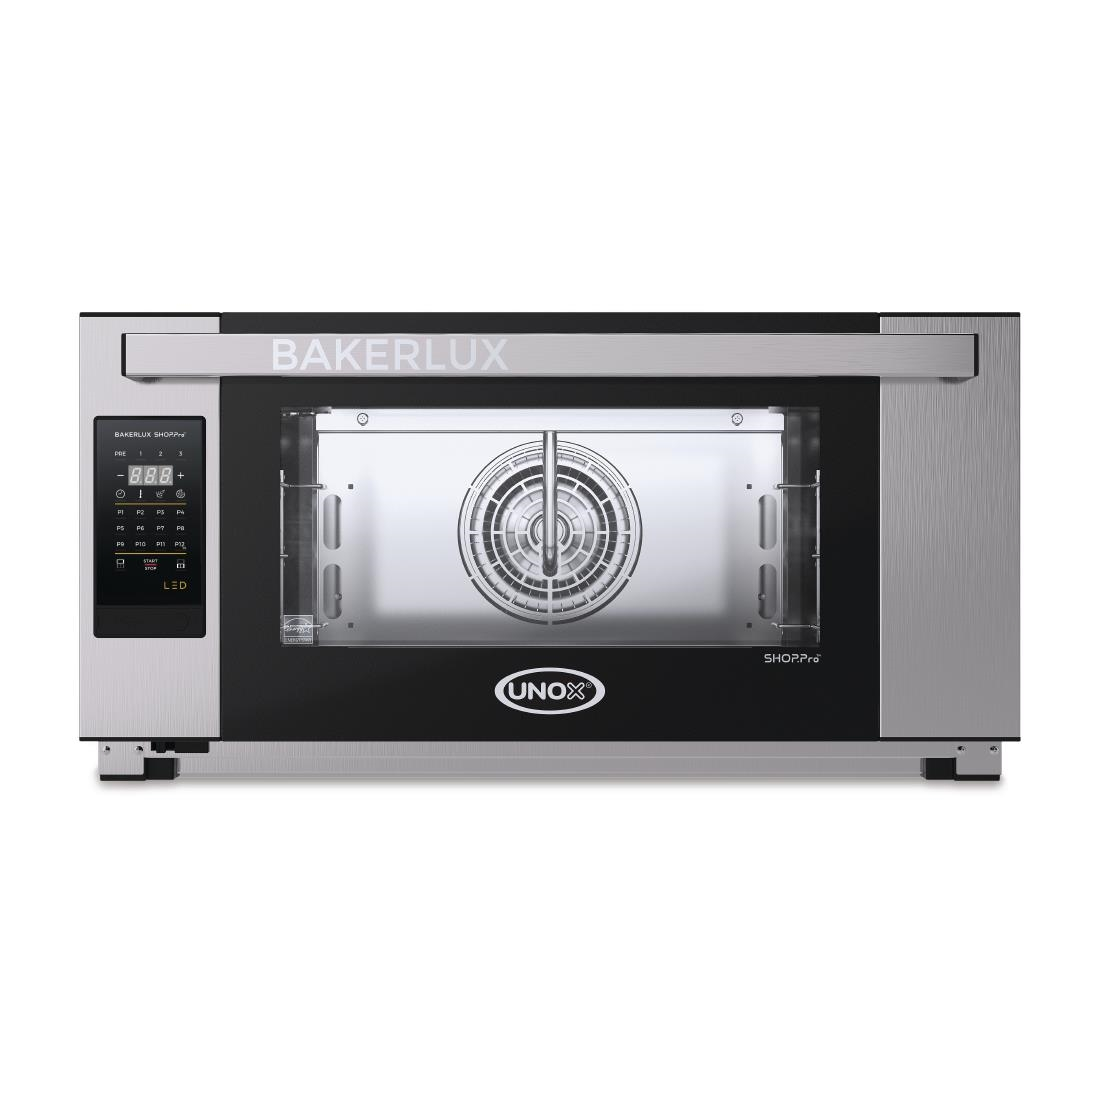 Unox Bakerlux SHOP Pro Elena LED 3 Grid Convection Oven